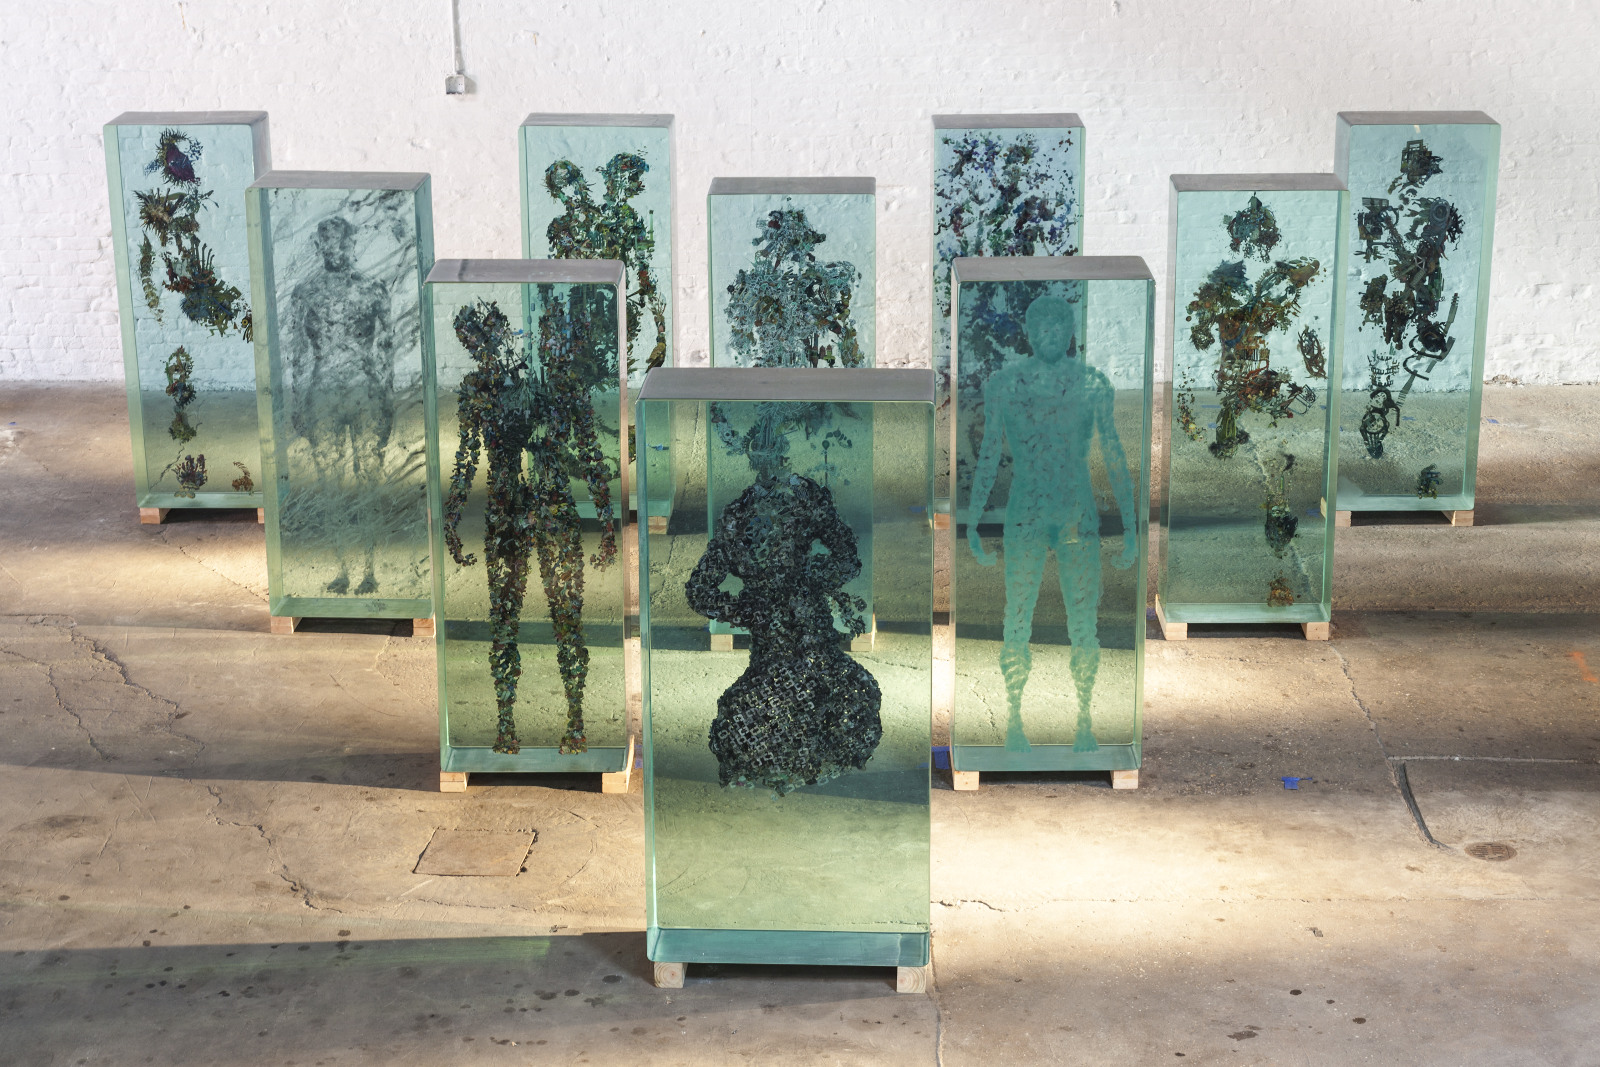 3D Collaged Figures Encased In Glass By Dustin Yellin 2